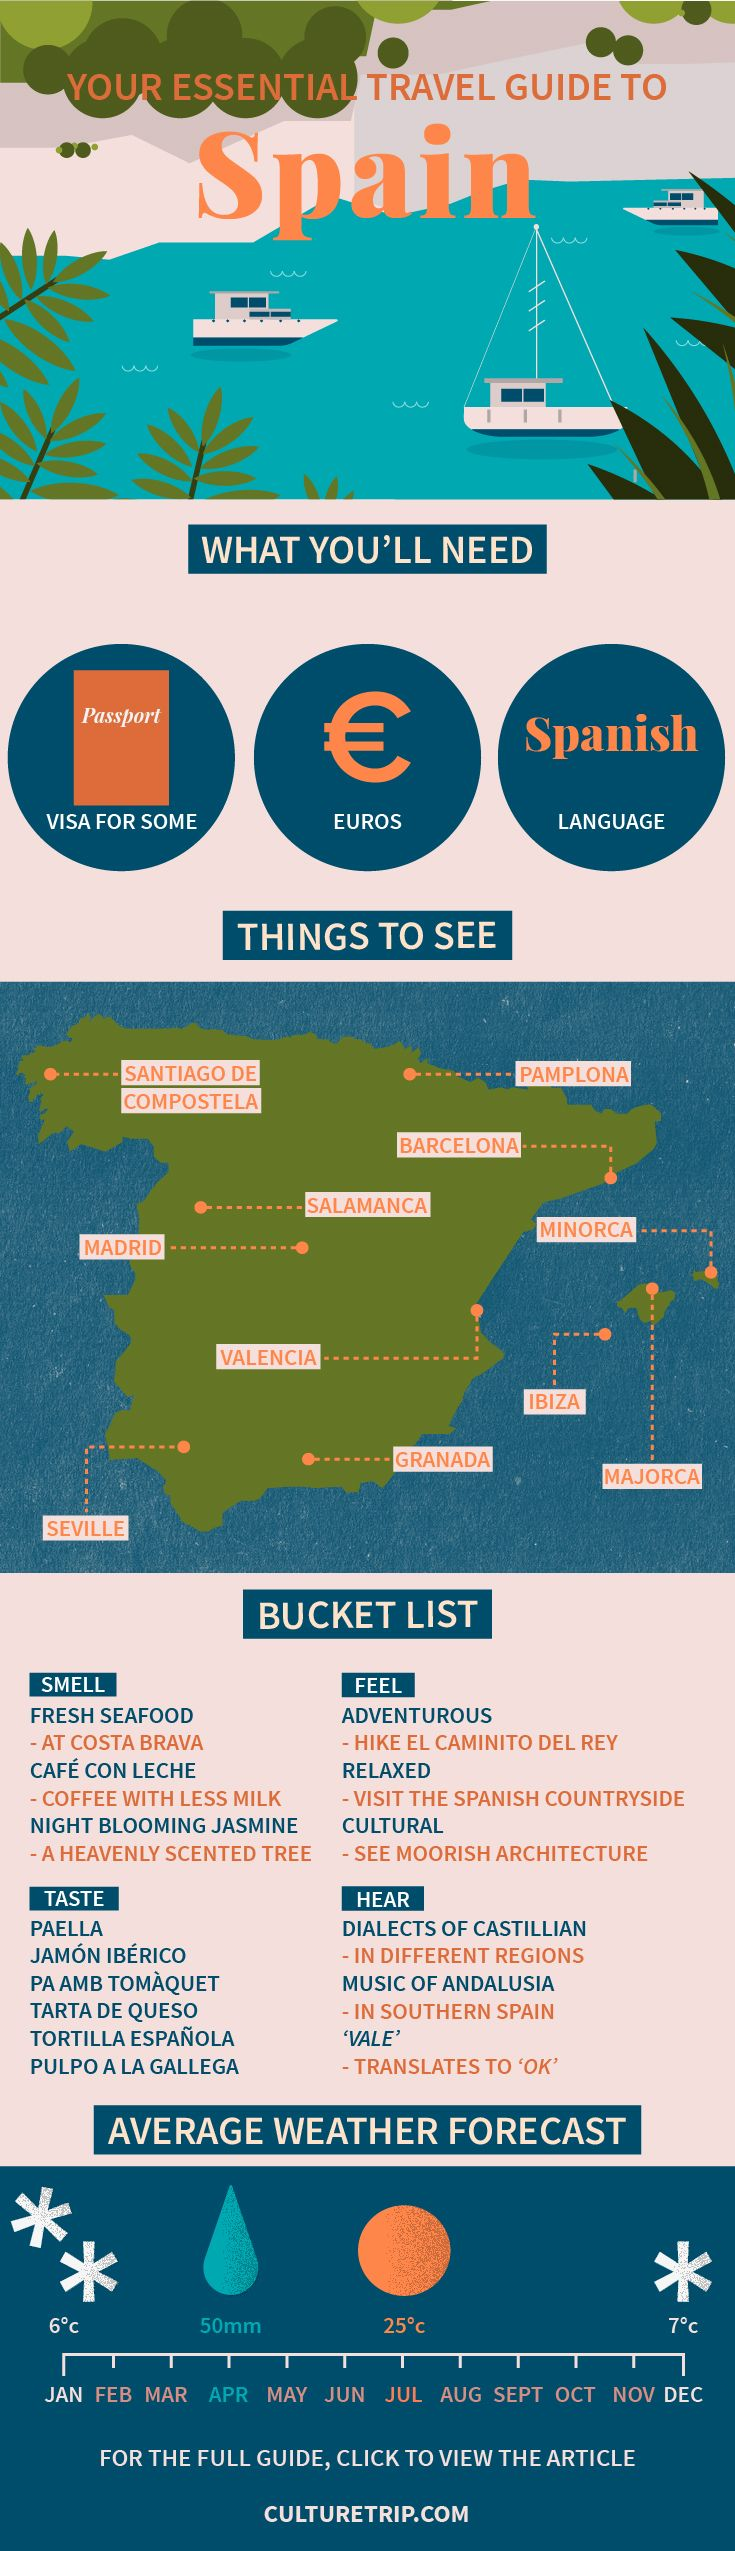 Your Essential Travel Guide to Spain (Infographic)| Spain, Madrid, weekend break, Europe, bucket list, wanderlust, adventure, challenge, coffee, bar, food, must try, Summer, Beach